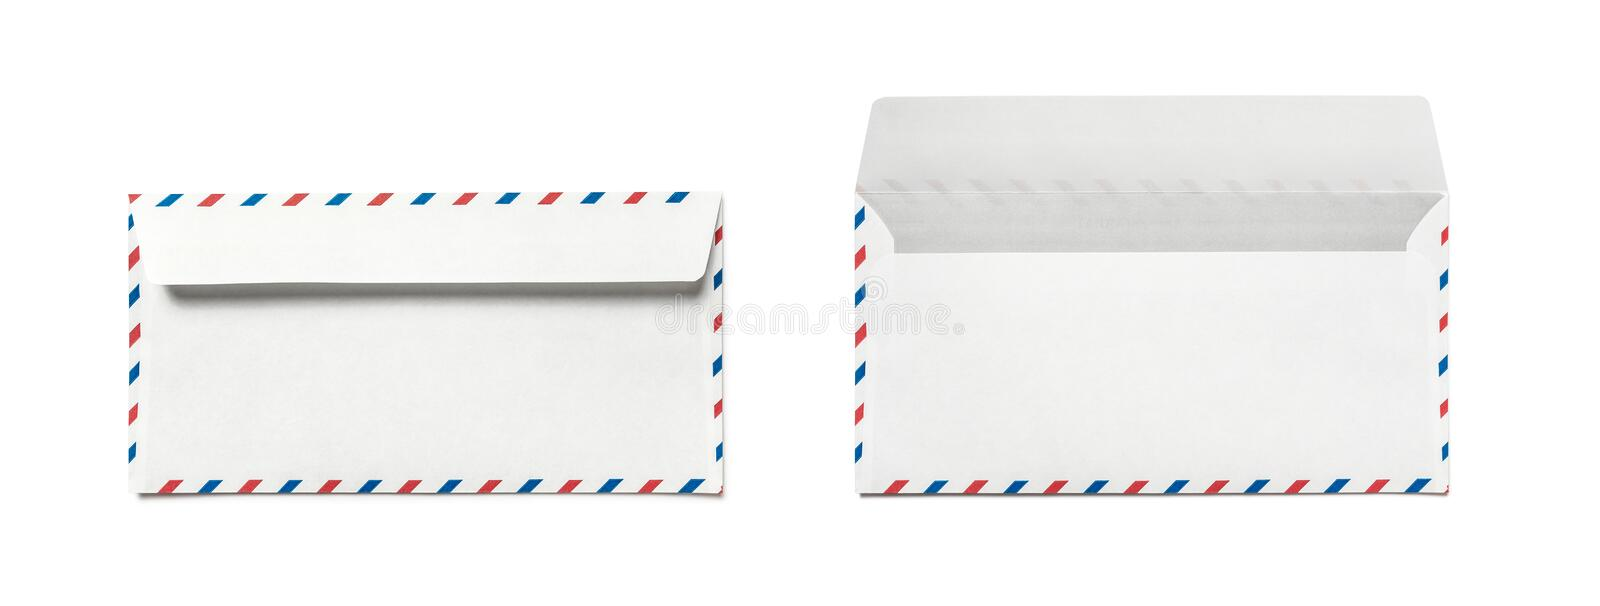 Blank airmail envelope isolated, rear view. Double back. royalty free stock image